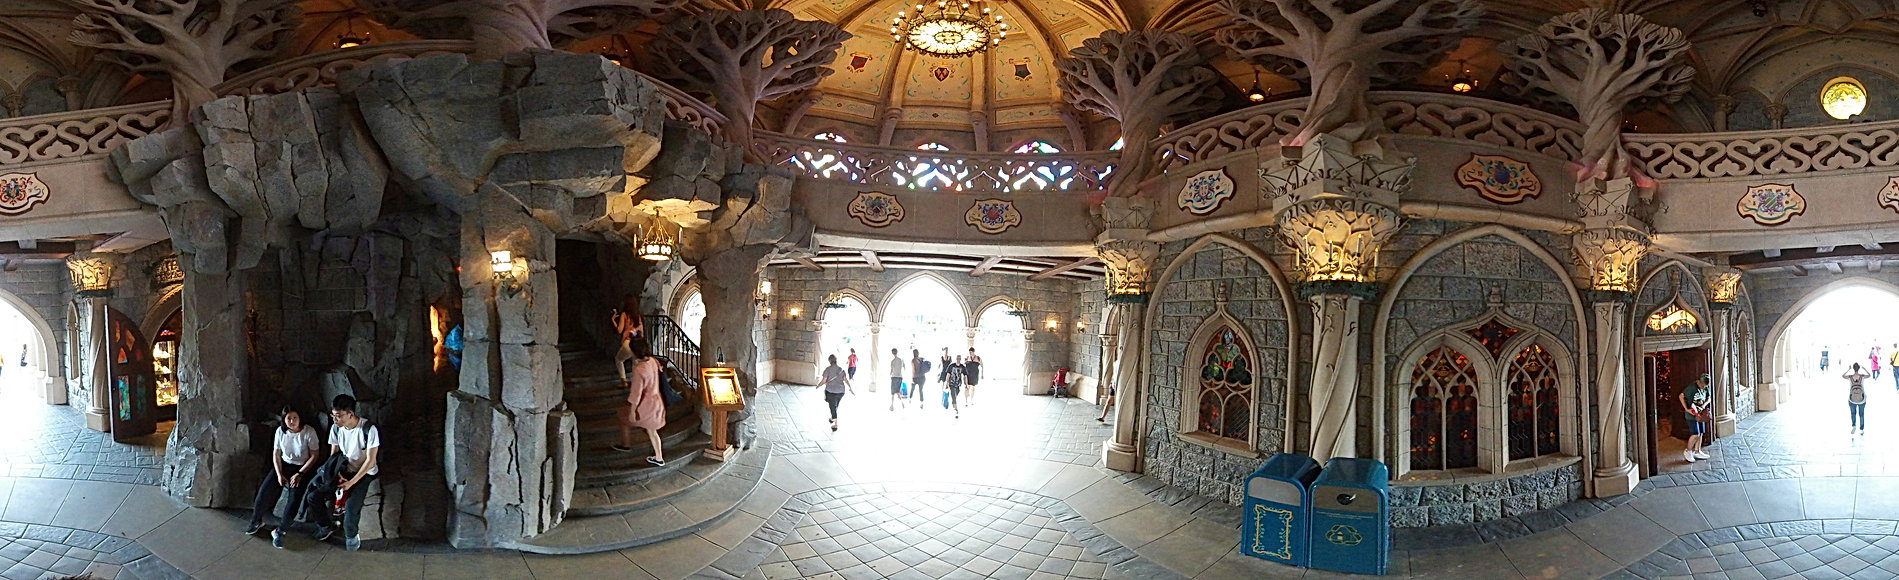 Inside Disneyland Paris Sleeping beauty Castle 360